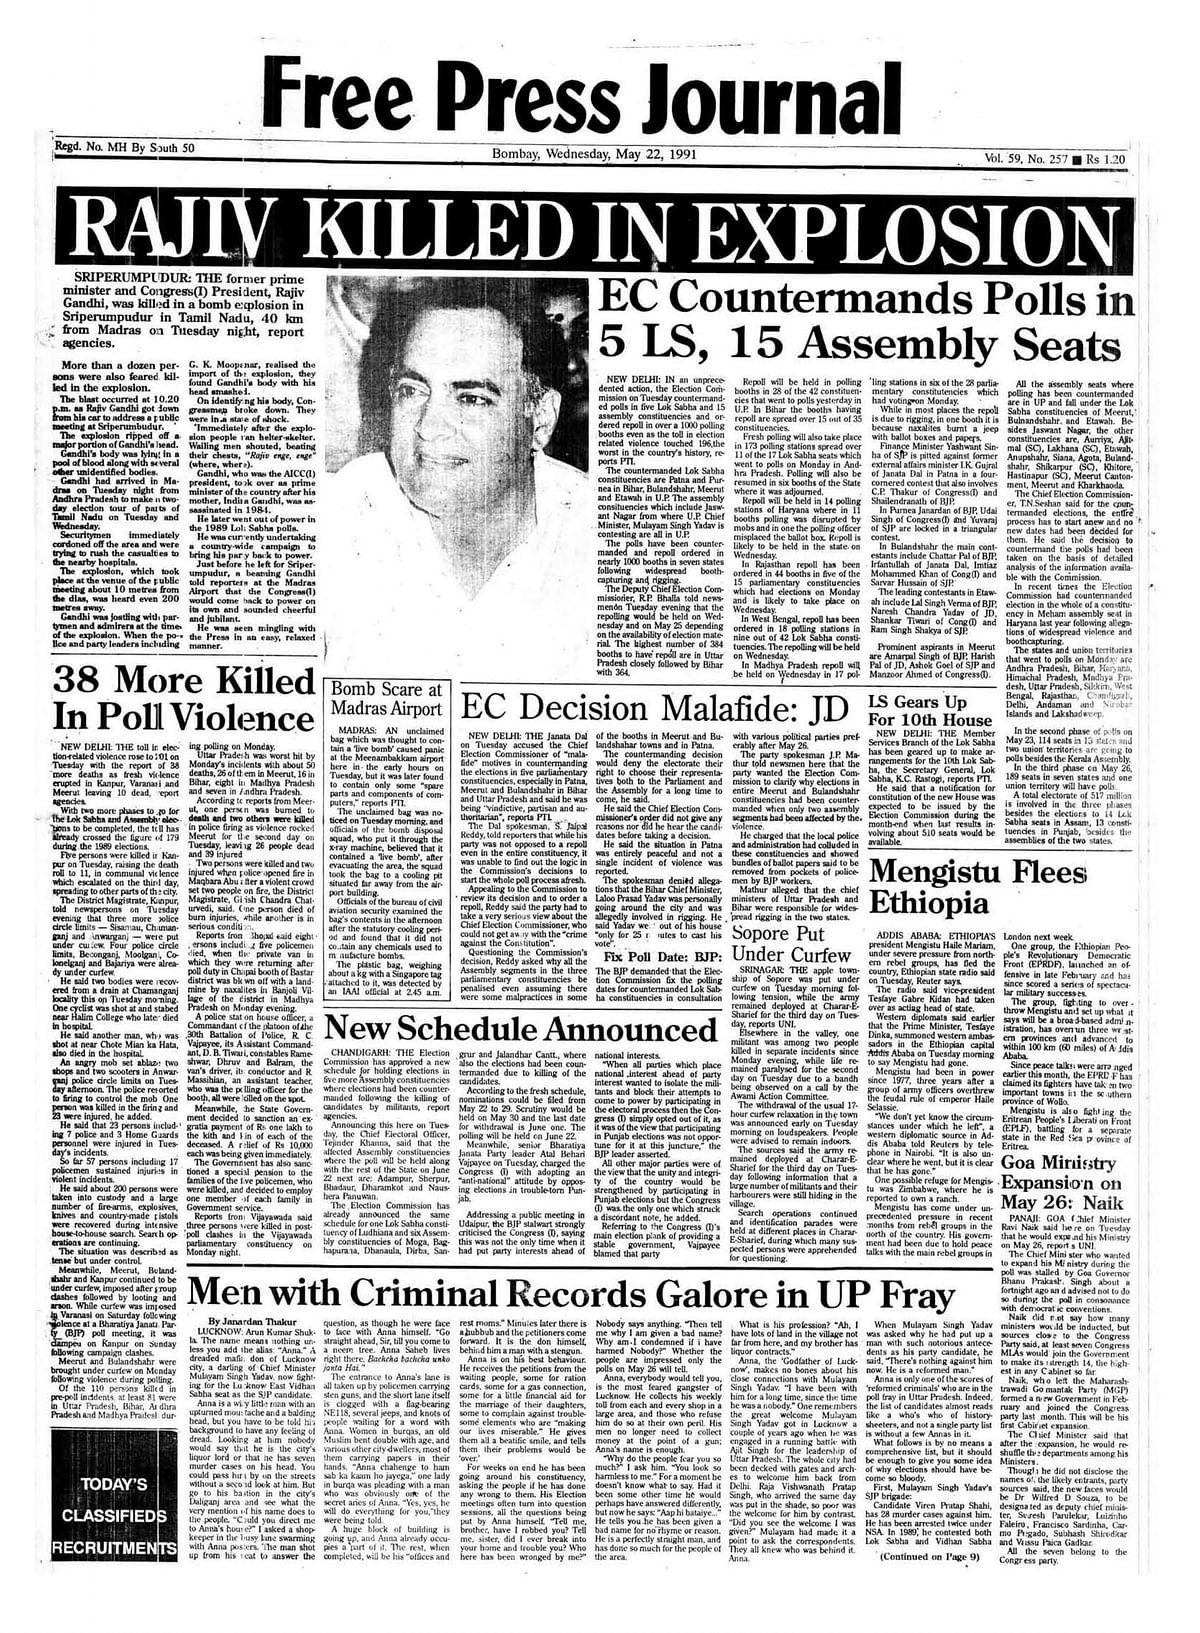 From the FPJ Archives: Rajiv Gandhi's assassination, nationwide mourning and Sonia's accession